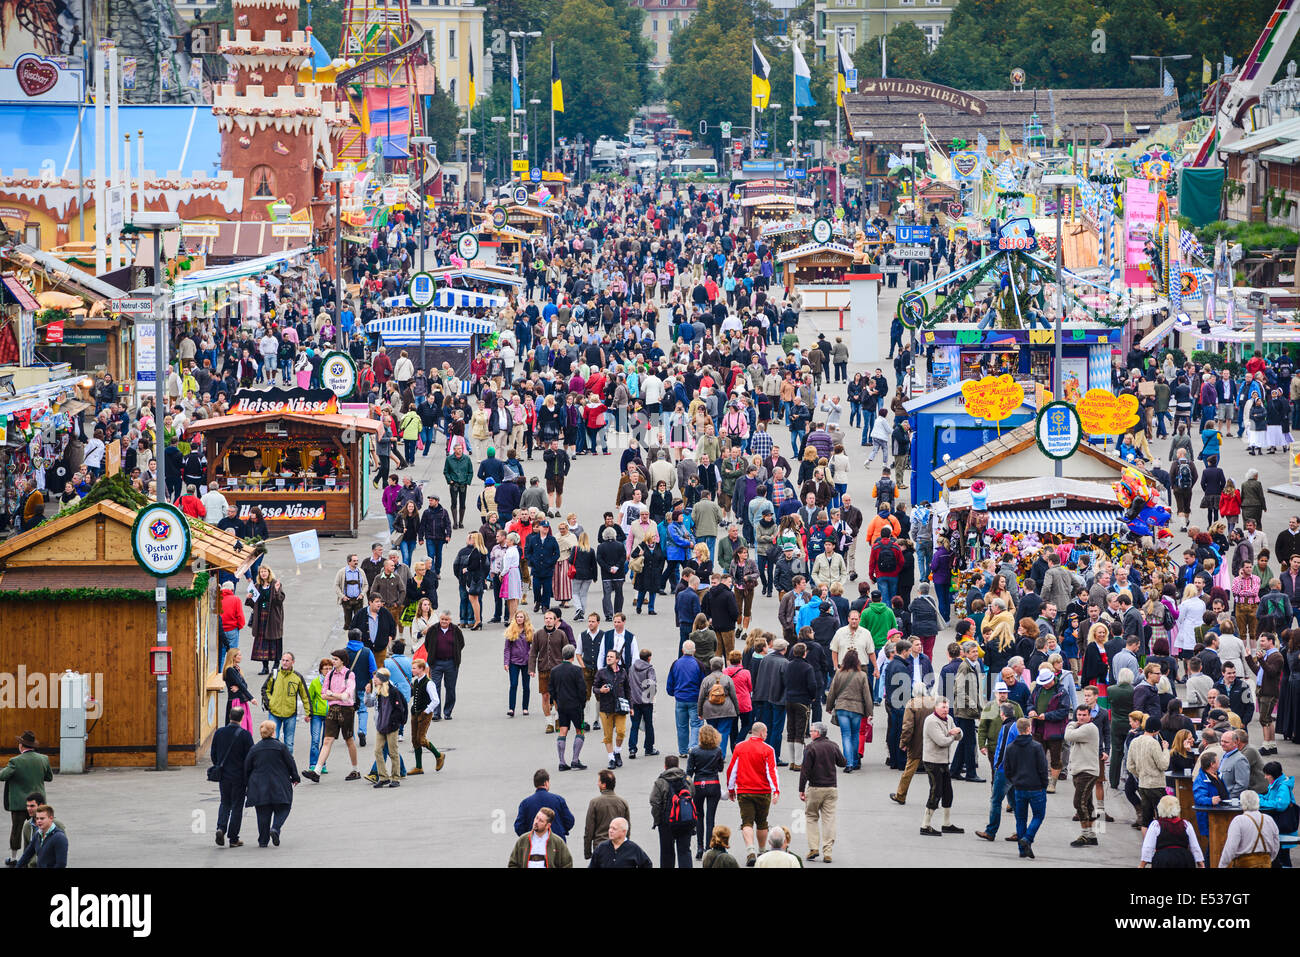 Visitors explore the Theresienwiese Oktoberfest fair grounds. - Stock Image